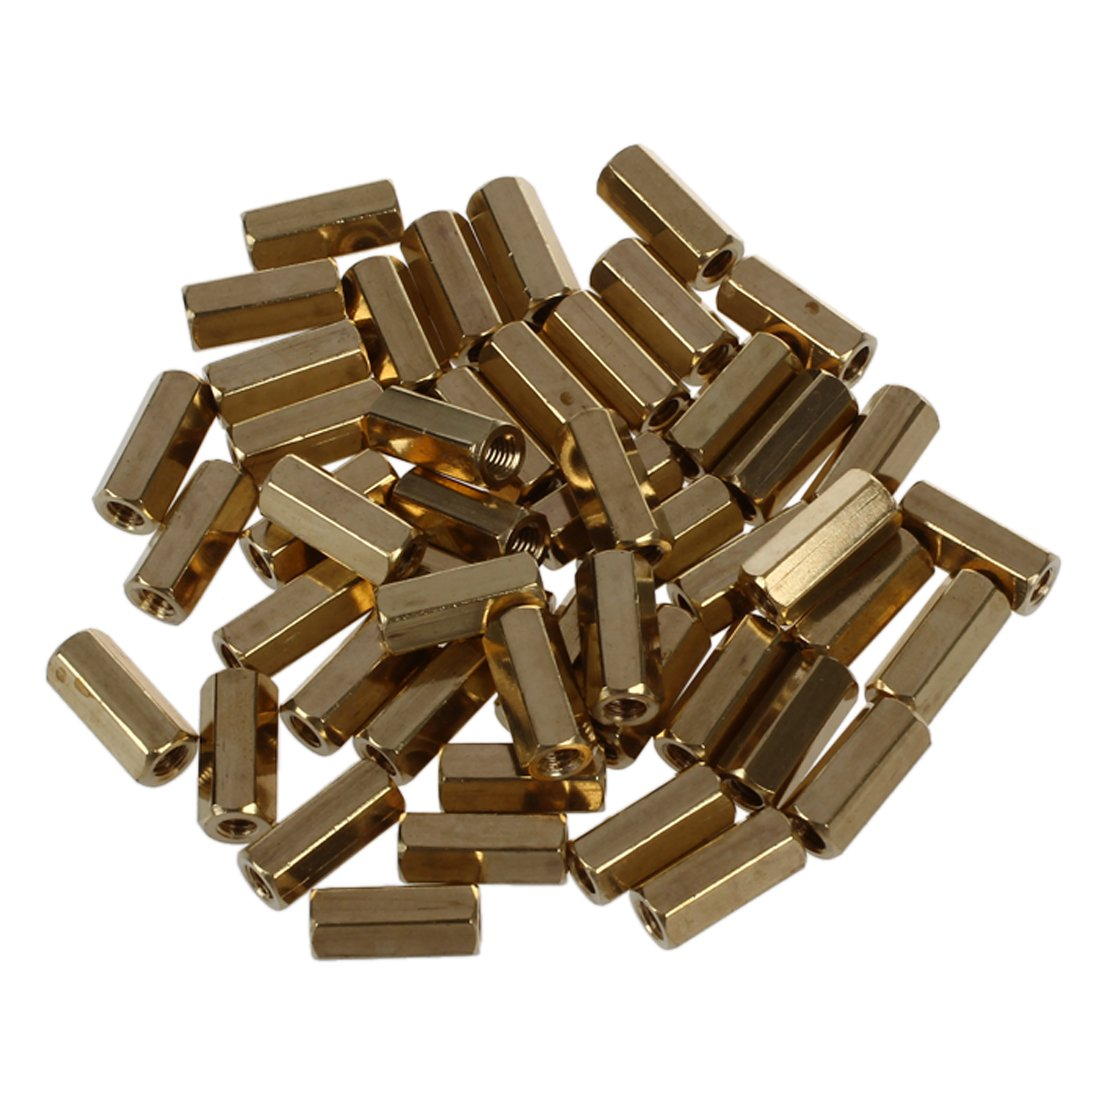 SODIAL(R) 50 Pcs Hexagonal 11mm Length M3 Female Thread PCB Standoff Spacers